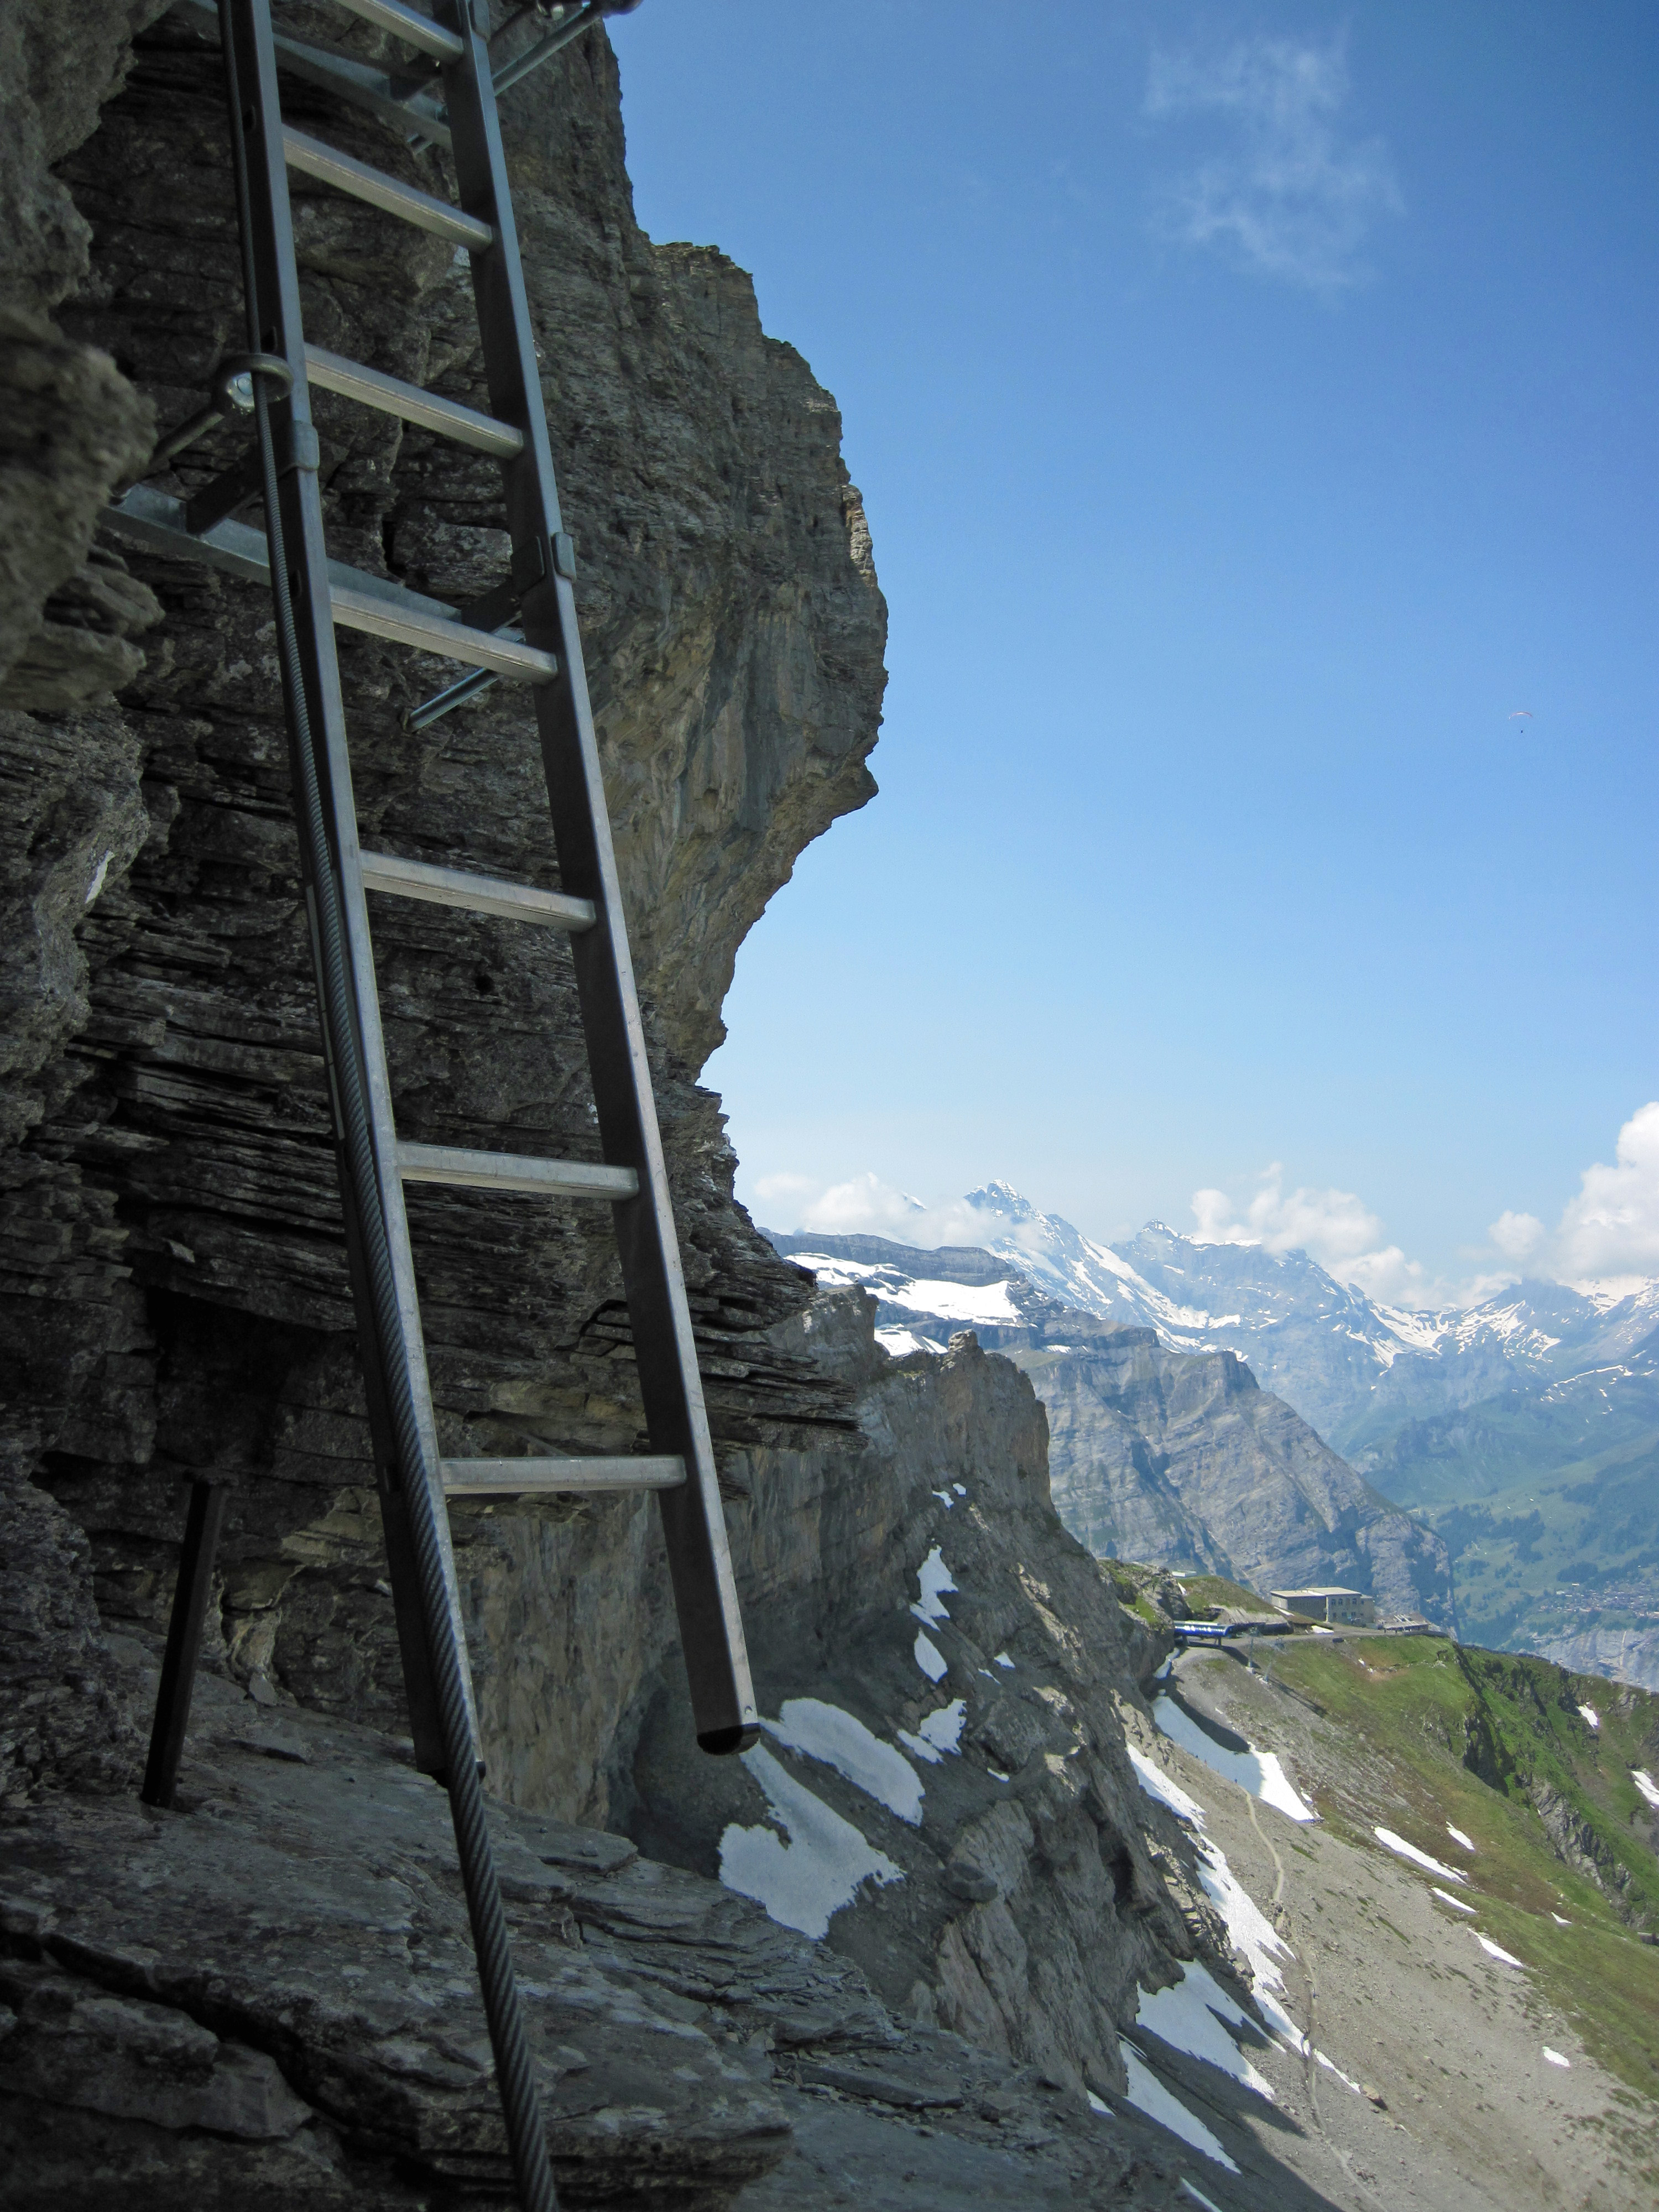 The Eigergletscher Station and Eiger Trail are behind & A Little Bit of the Eiger \u2013 the Rotstock Via Ferrata \u2013 the Severe ...